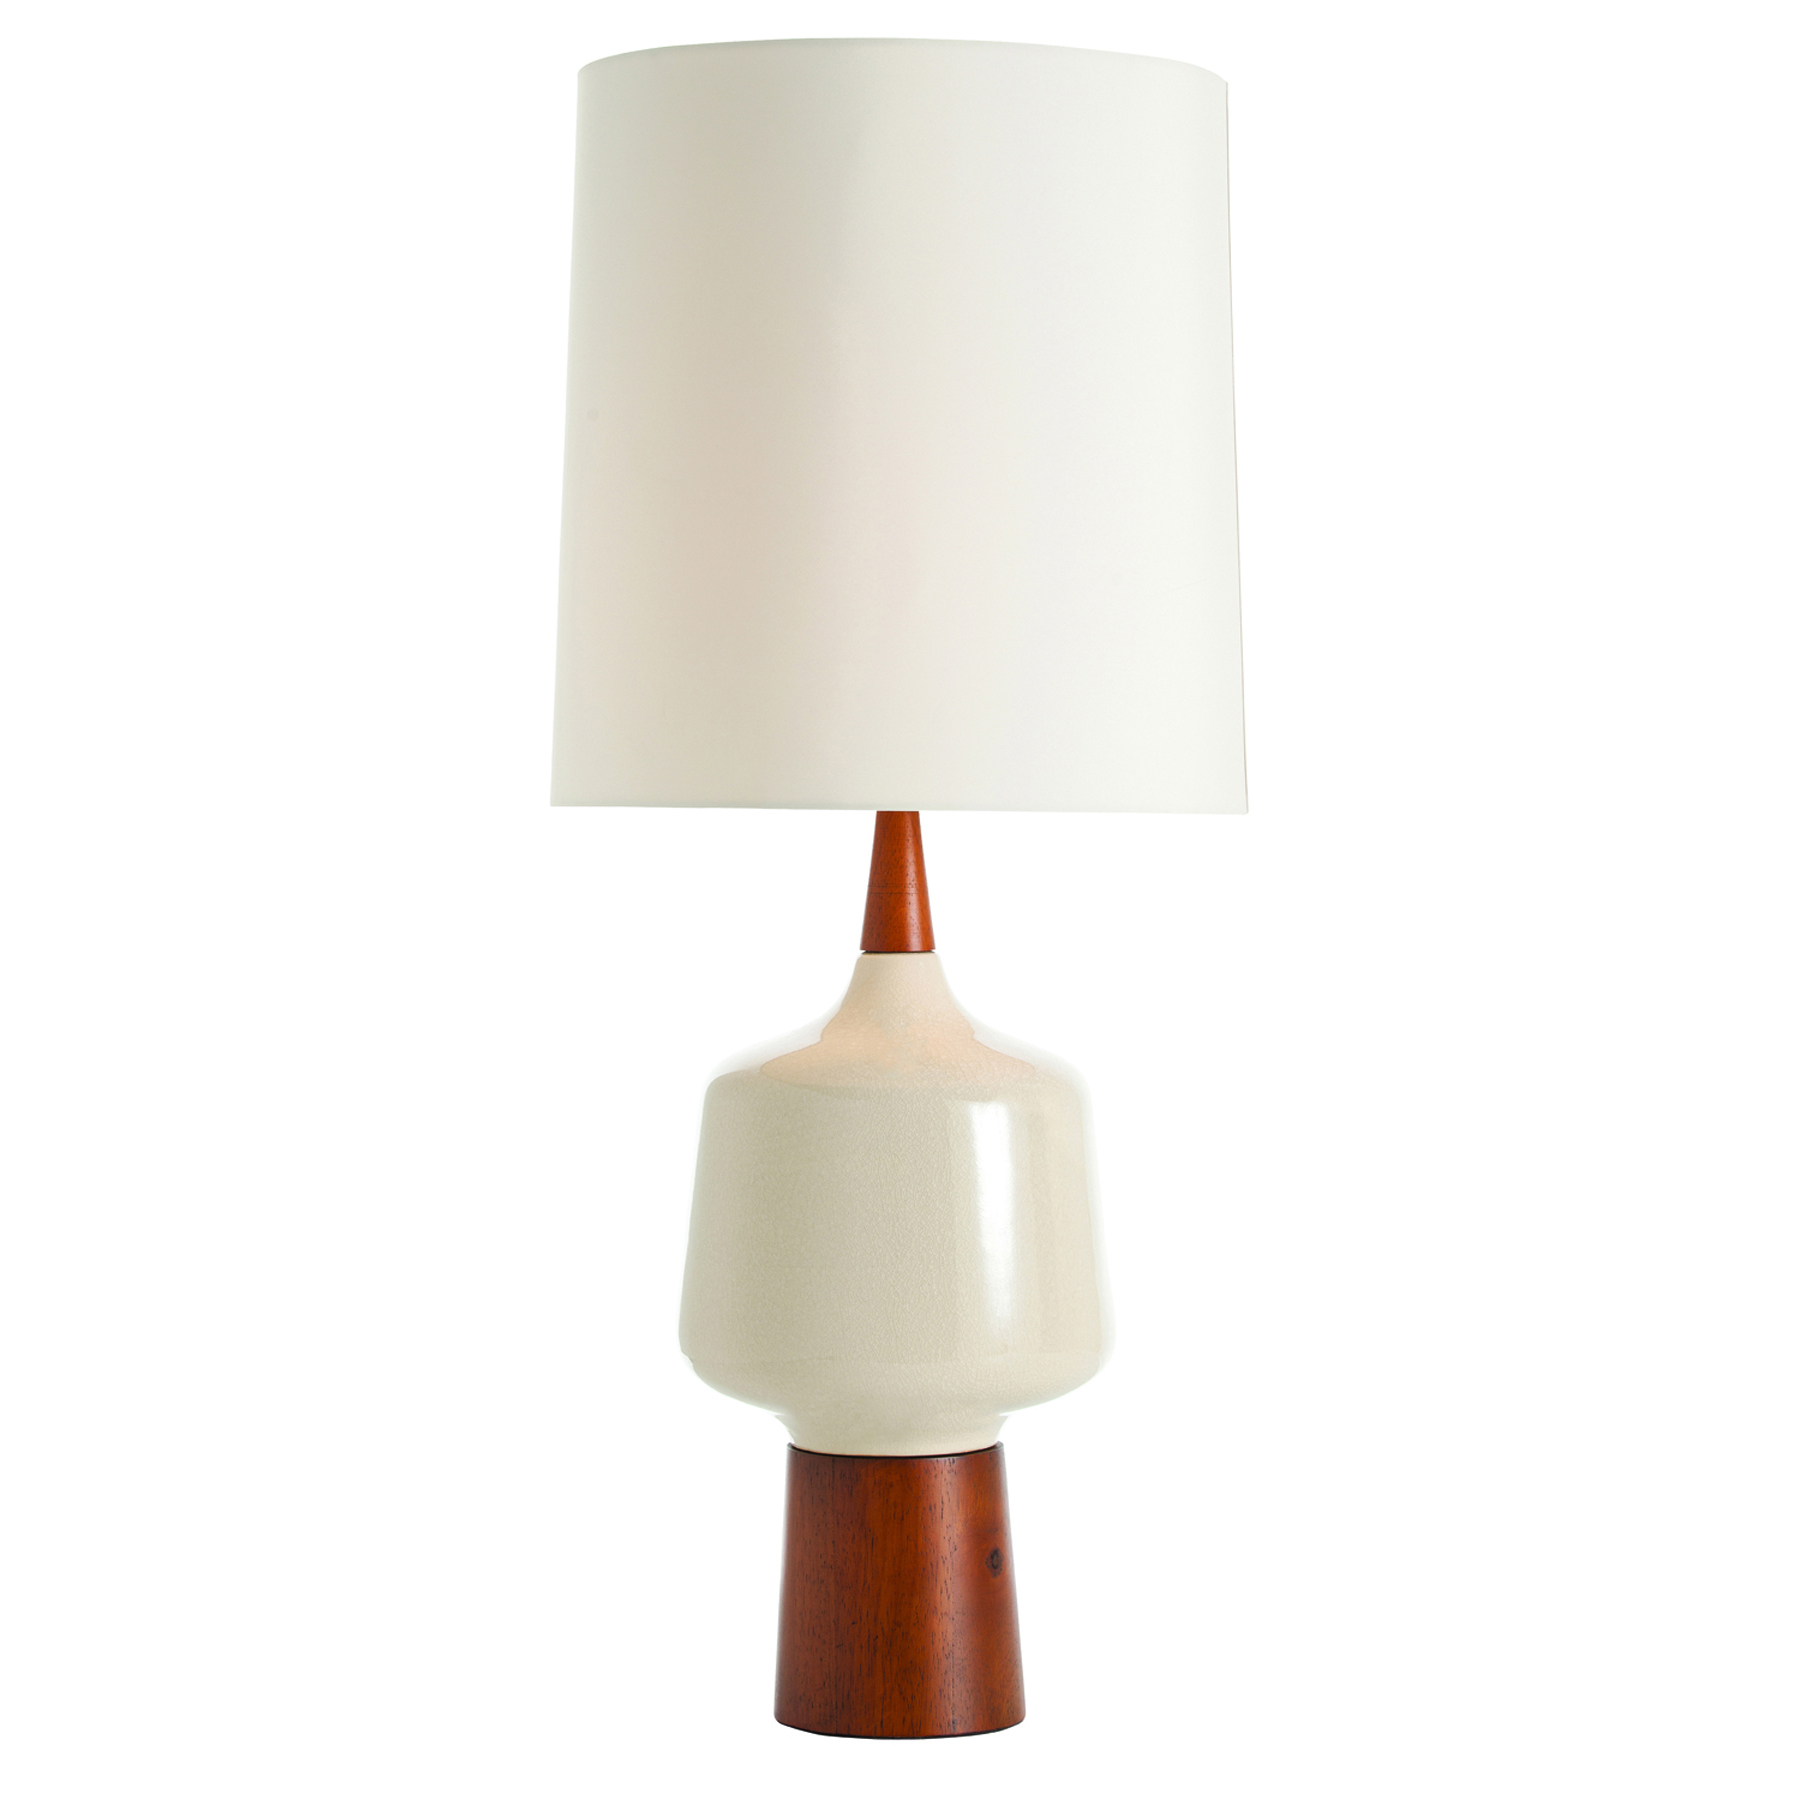 Calhoun Slim Table Lamp By Arteriors Home